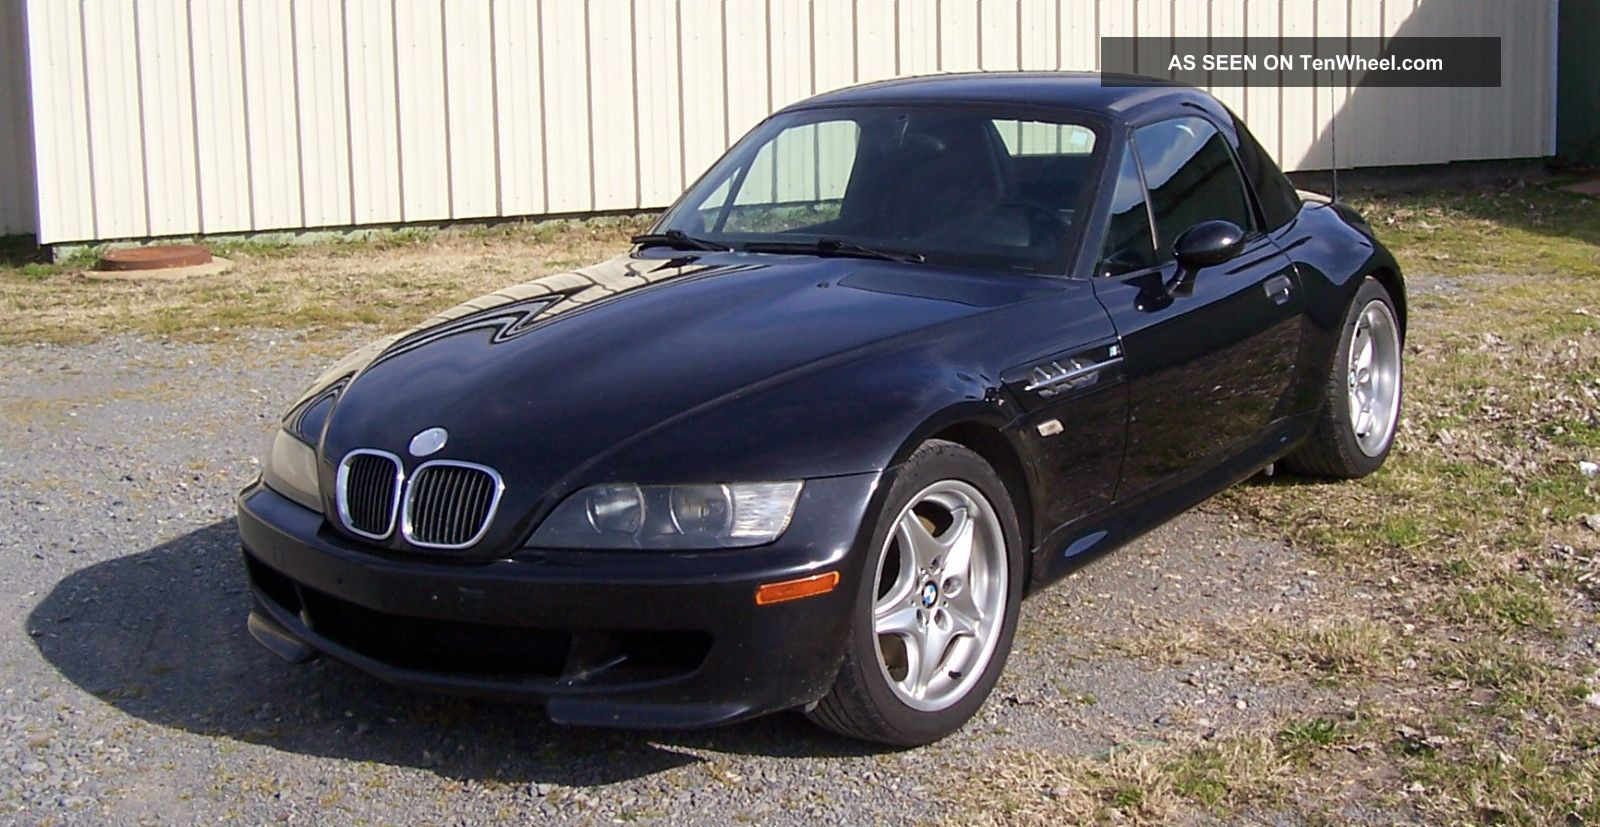 hight resolution of metalic black m bmw z3 m series roadster 2000 model removable factory hard top